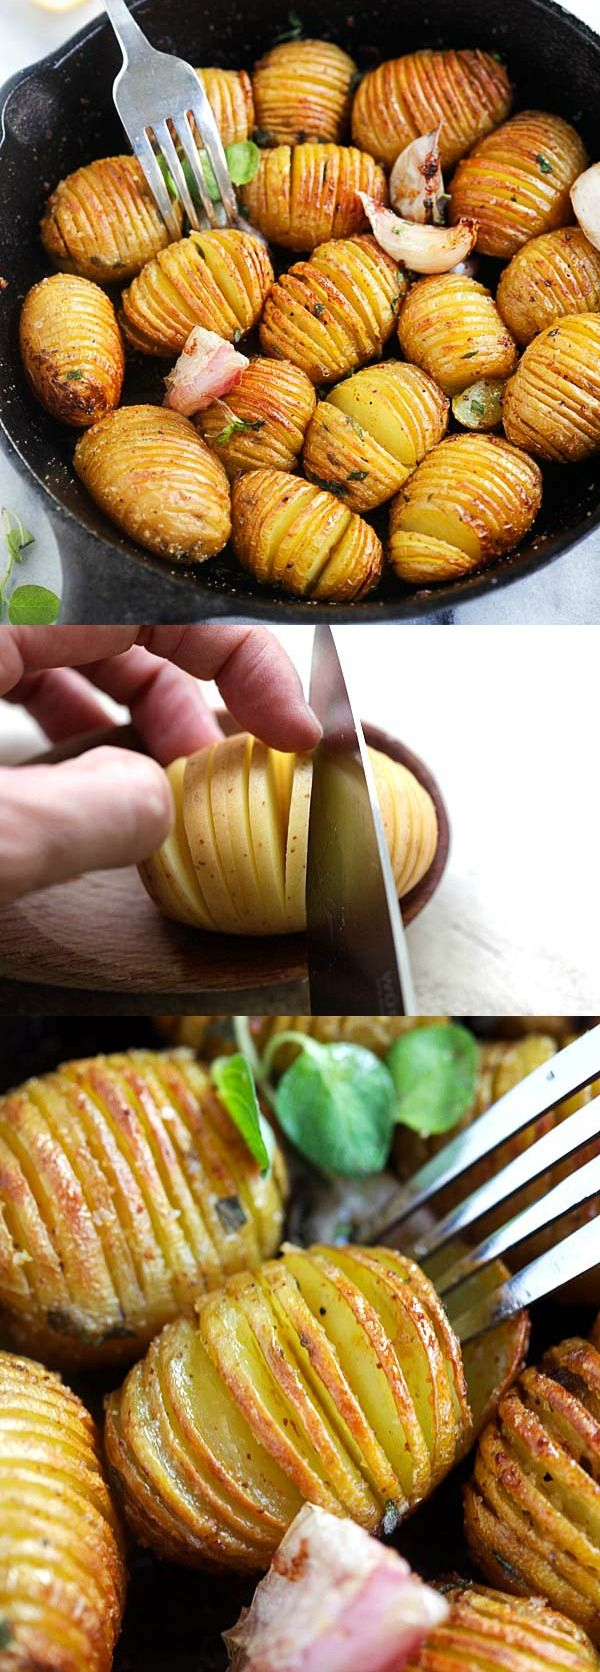 Garlic Butter Hasselback Potatoes - easy roasted potatoes with garlic and butter. Each potato is cut and sliced to form the Hasselback shape. Bake in oven for 40 minutes and you'll have the most amazing side dish | rasamalaysia.com